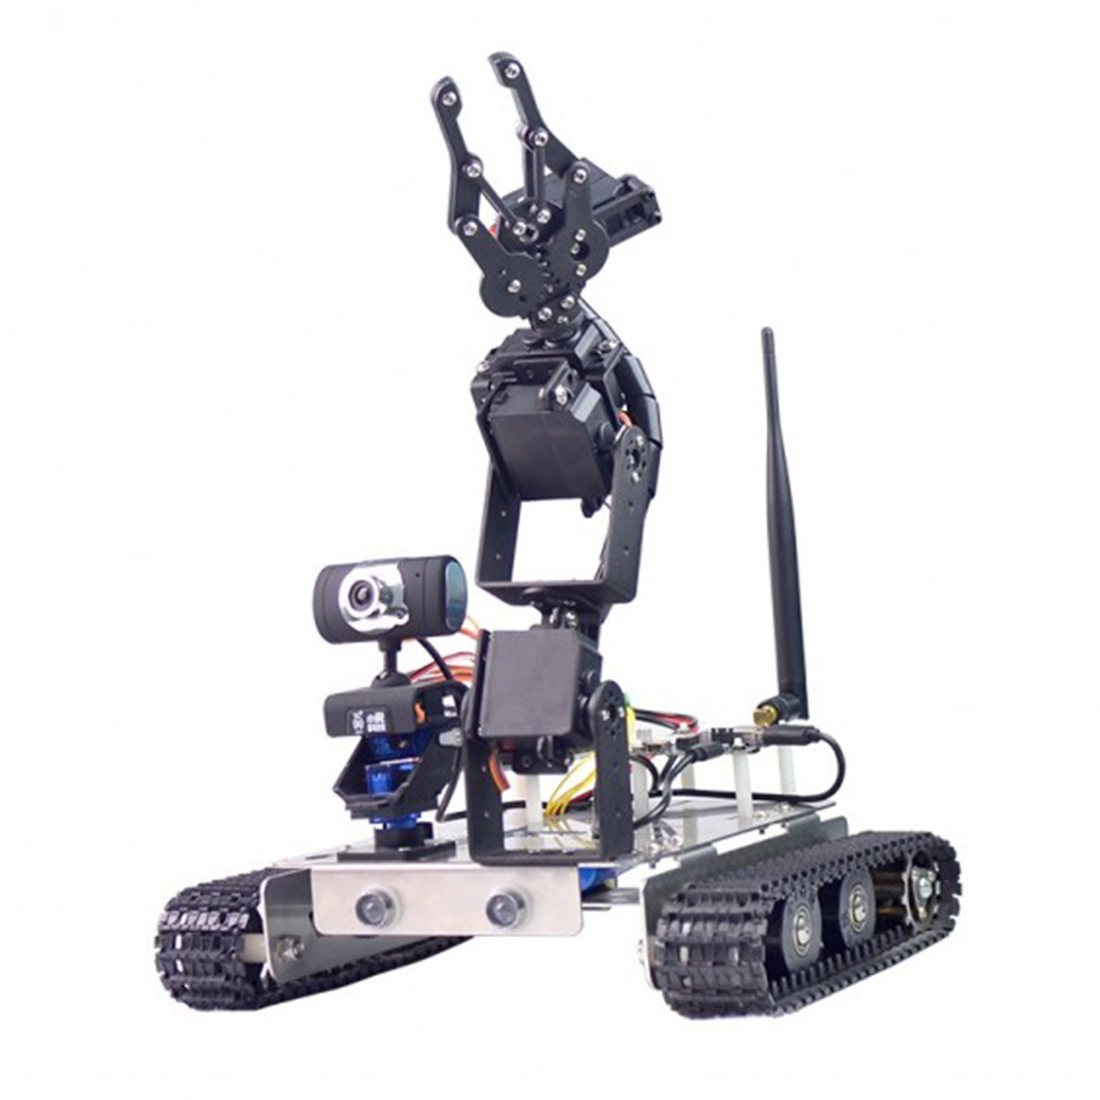 Programmable Robot Wifi + Bluetooth Chassis Track Tank Car Arm For Raspberry Pi 3B+Line Patrol Intelligent Obstacle Avoidance